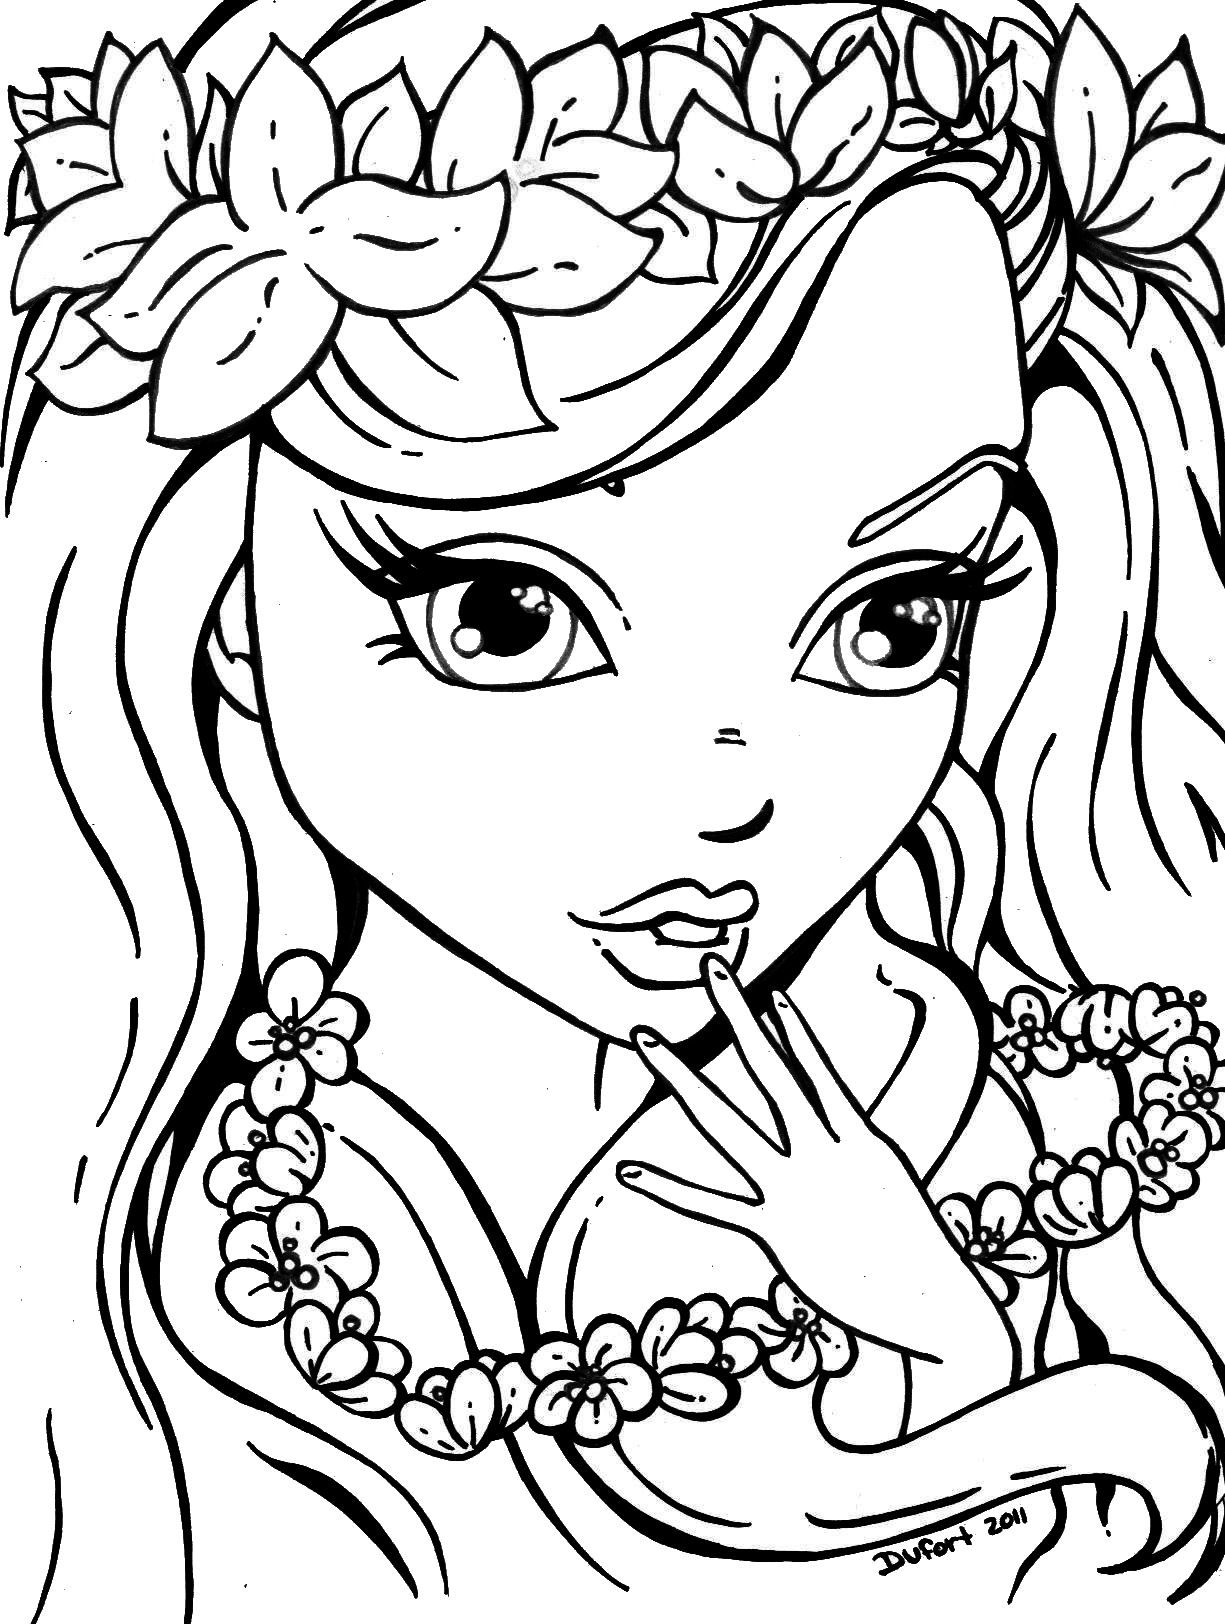 Cute Coloring Pages for Adults Bertmilne Download Of Cute Coloring Pages for Girls Printable Kids Colouring Pages Kids Gallery